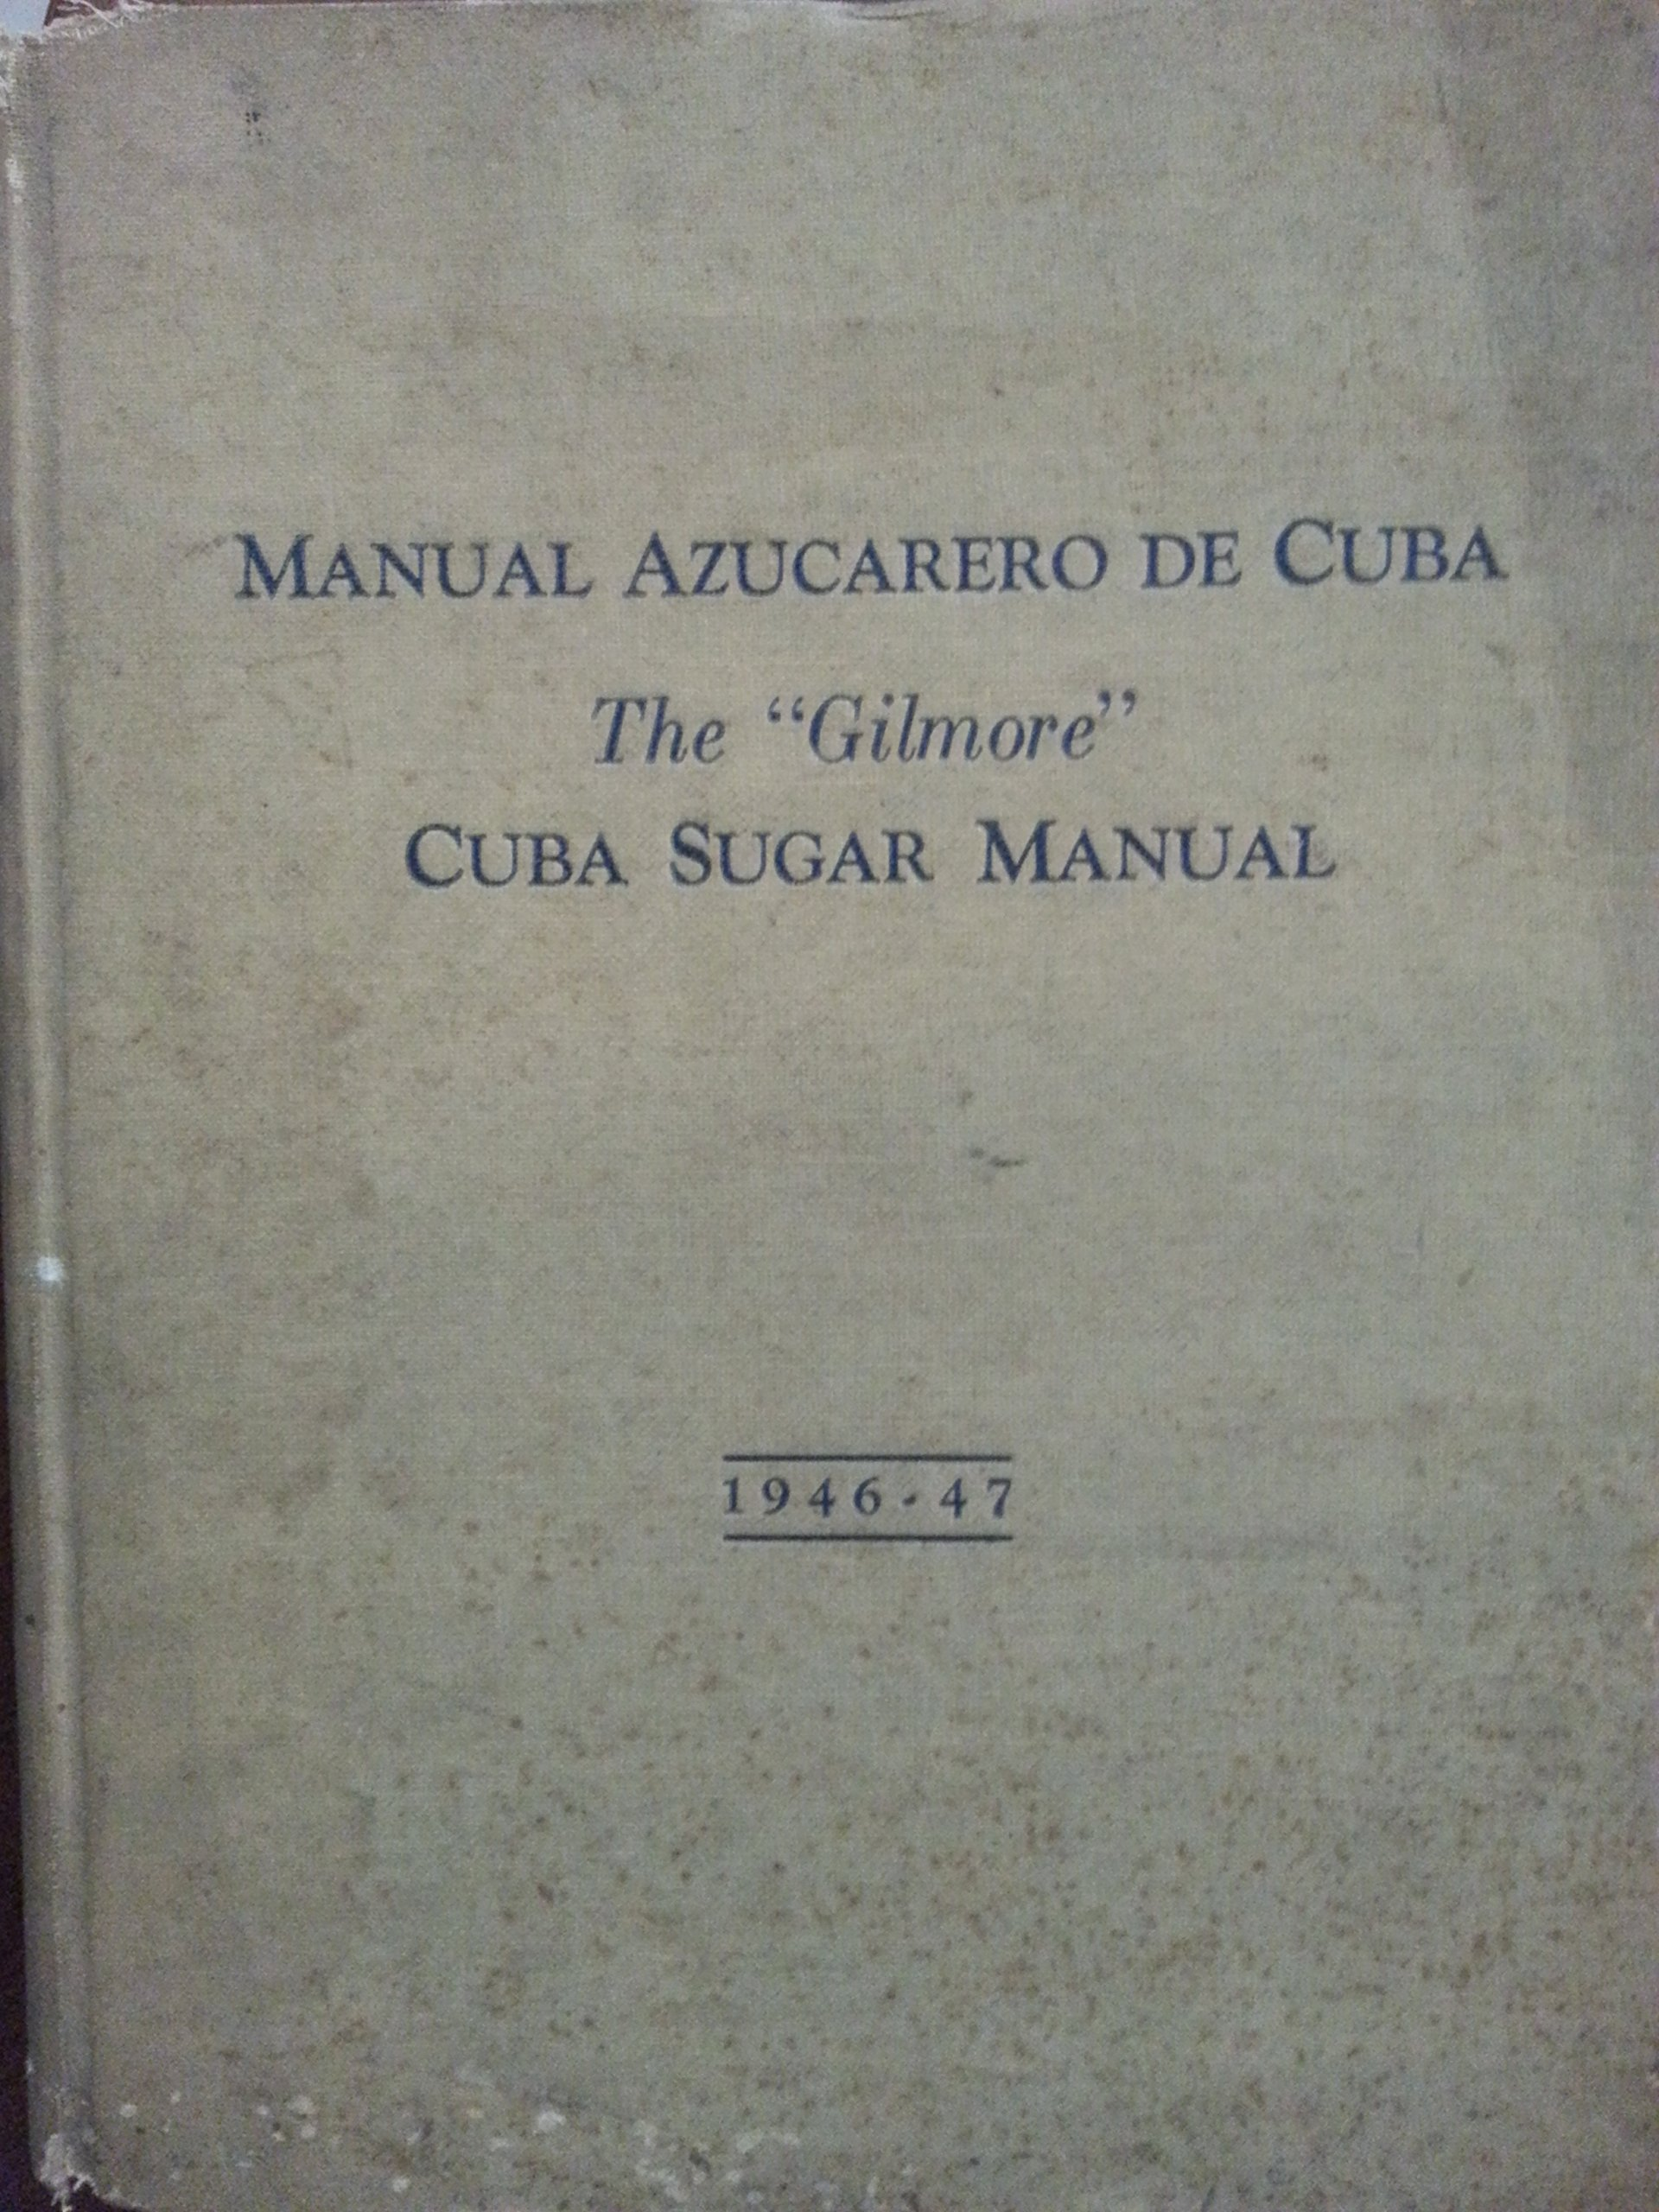 Manual azucarero de cuba,the gilmore,cuba sugar manual,1946-1947,bilingual edition,english ans spanish. Hardcover – 1947